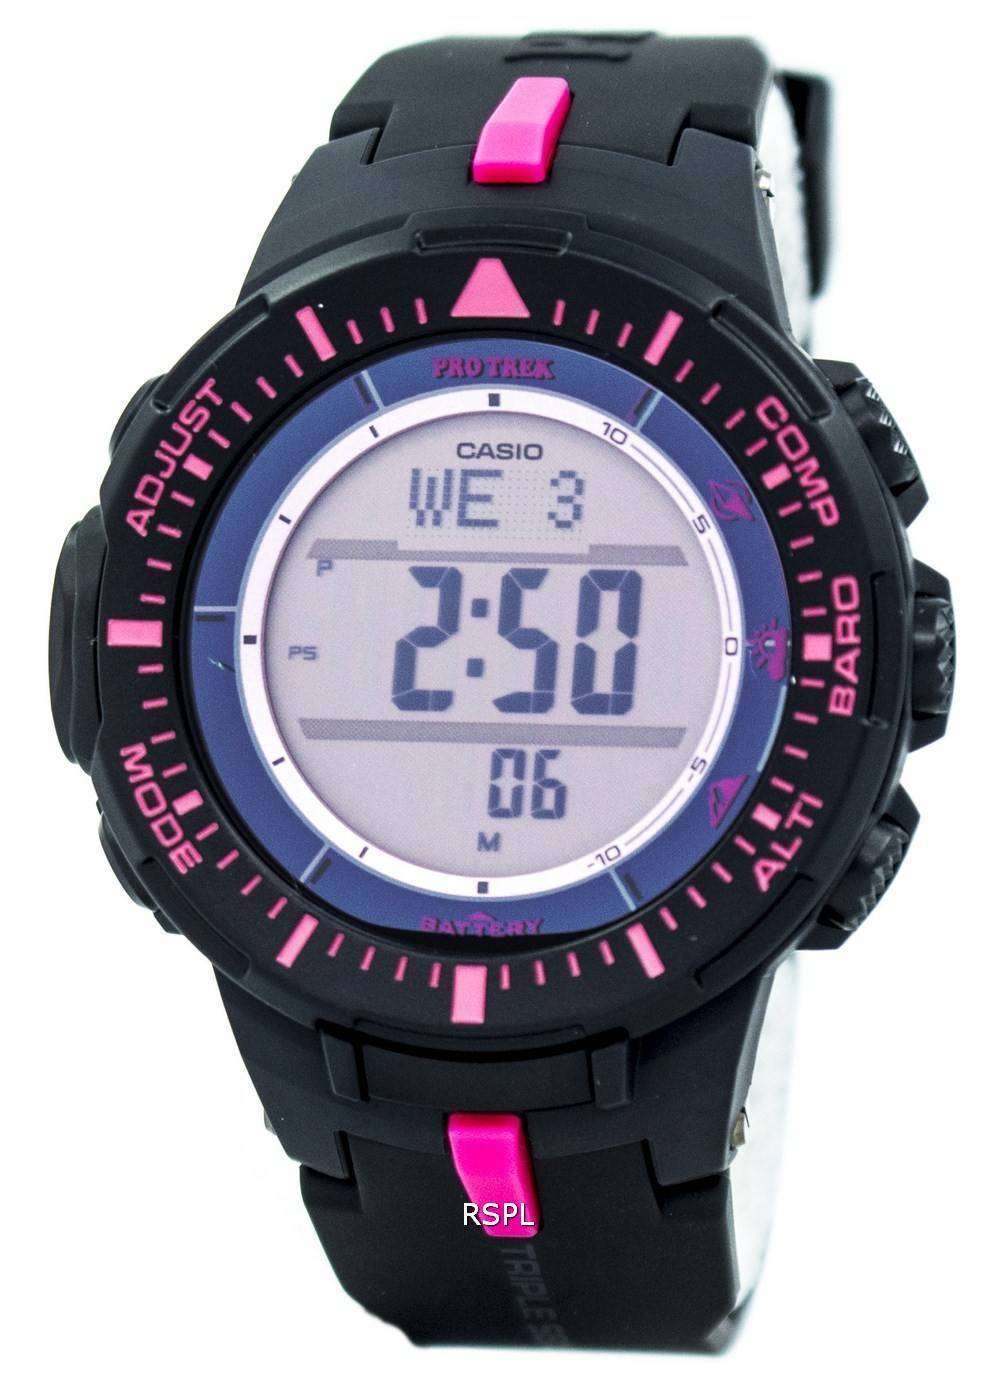 casio protrek prg 300 manual